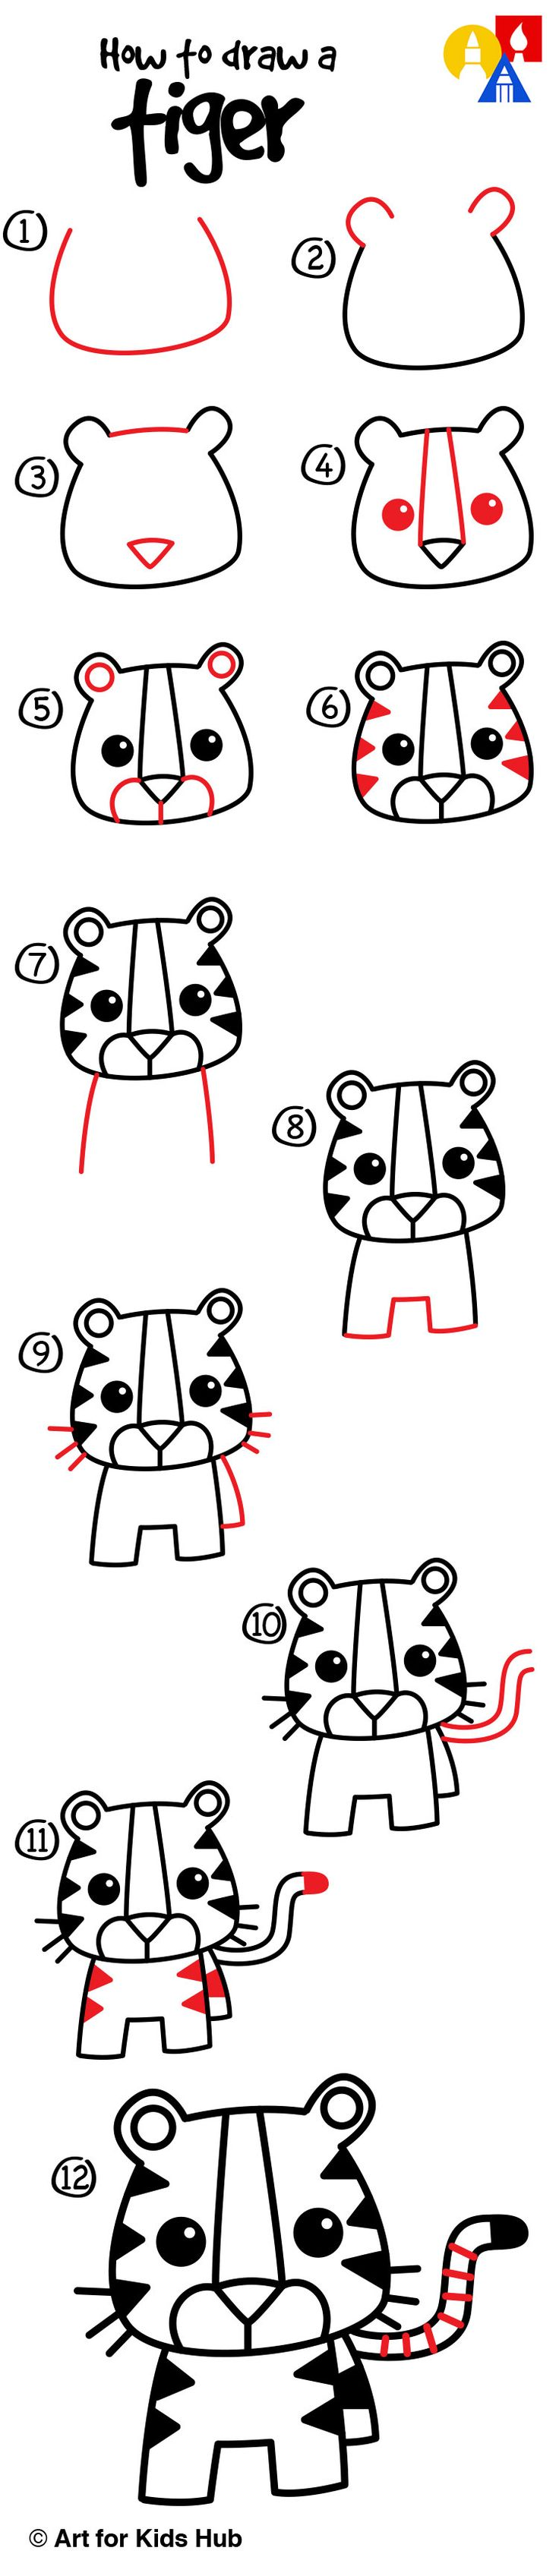 how to draw a cartoon tiger art for kids hub - Simple Drawing For Kid